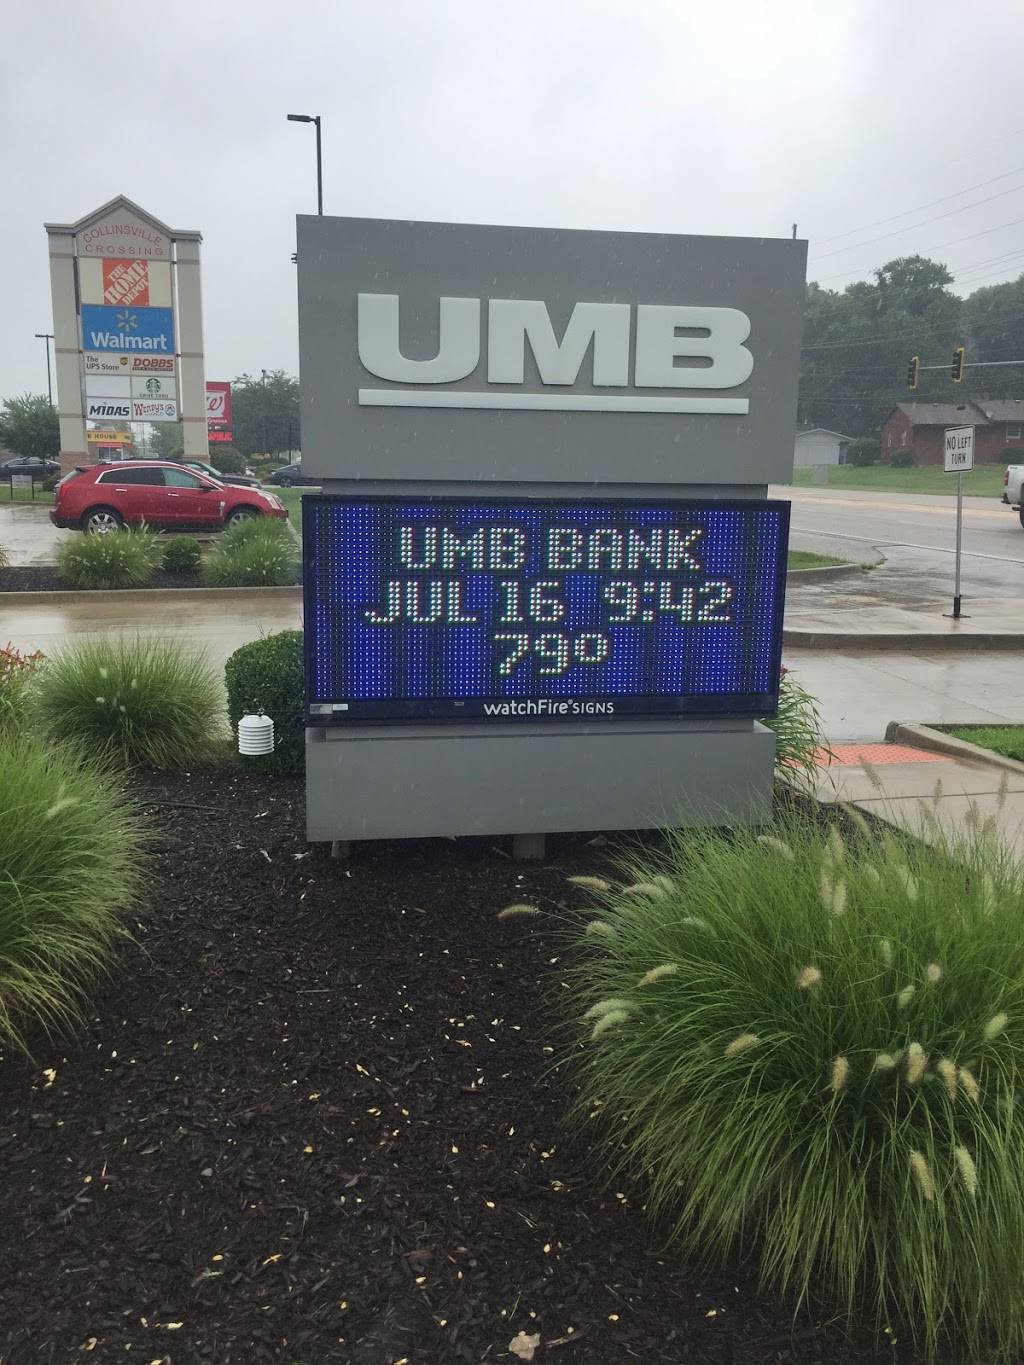 UMB Bank (with drive-thru services) - bank  | Photo 7 of 7 | Address: 401 N Bluff Rd, Collinsville, IL 62234, USA | Phone: (618) 346-1499